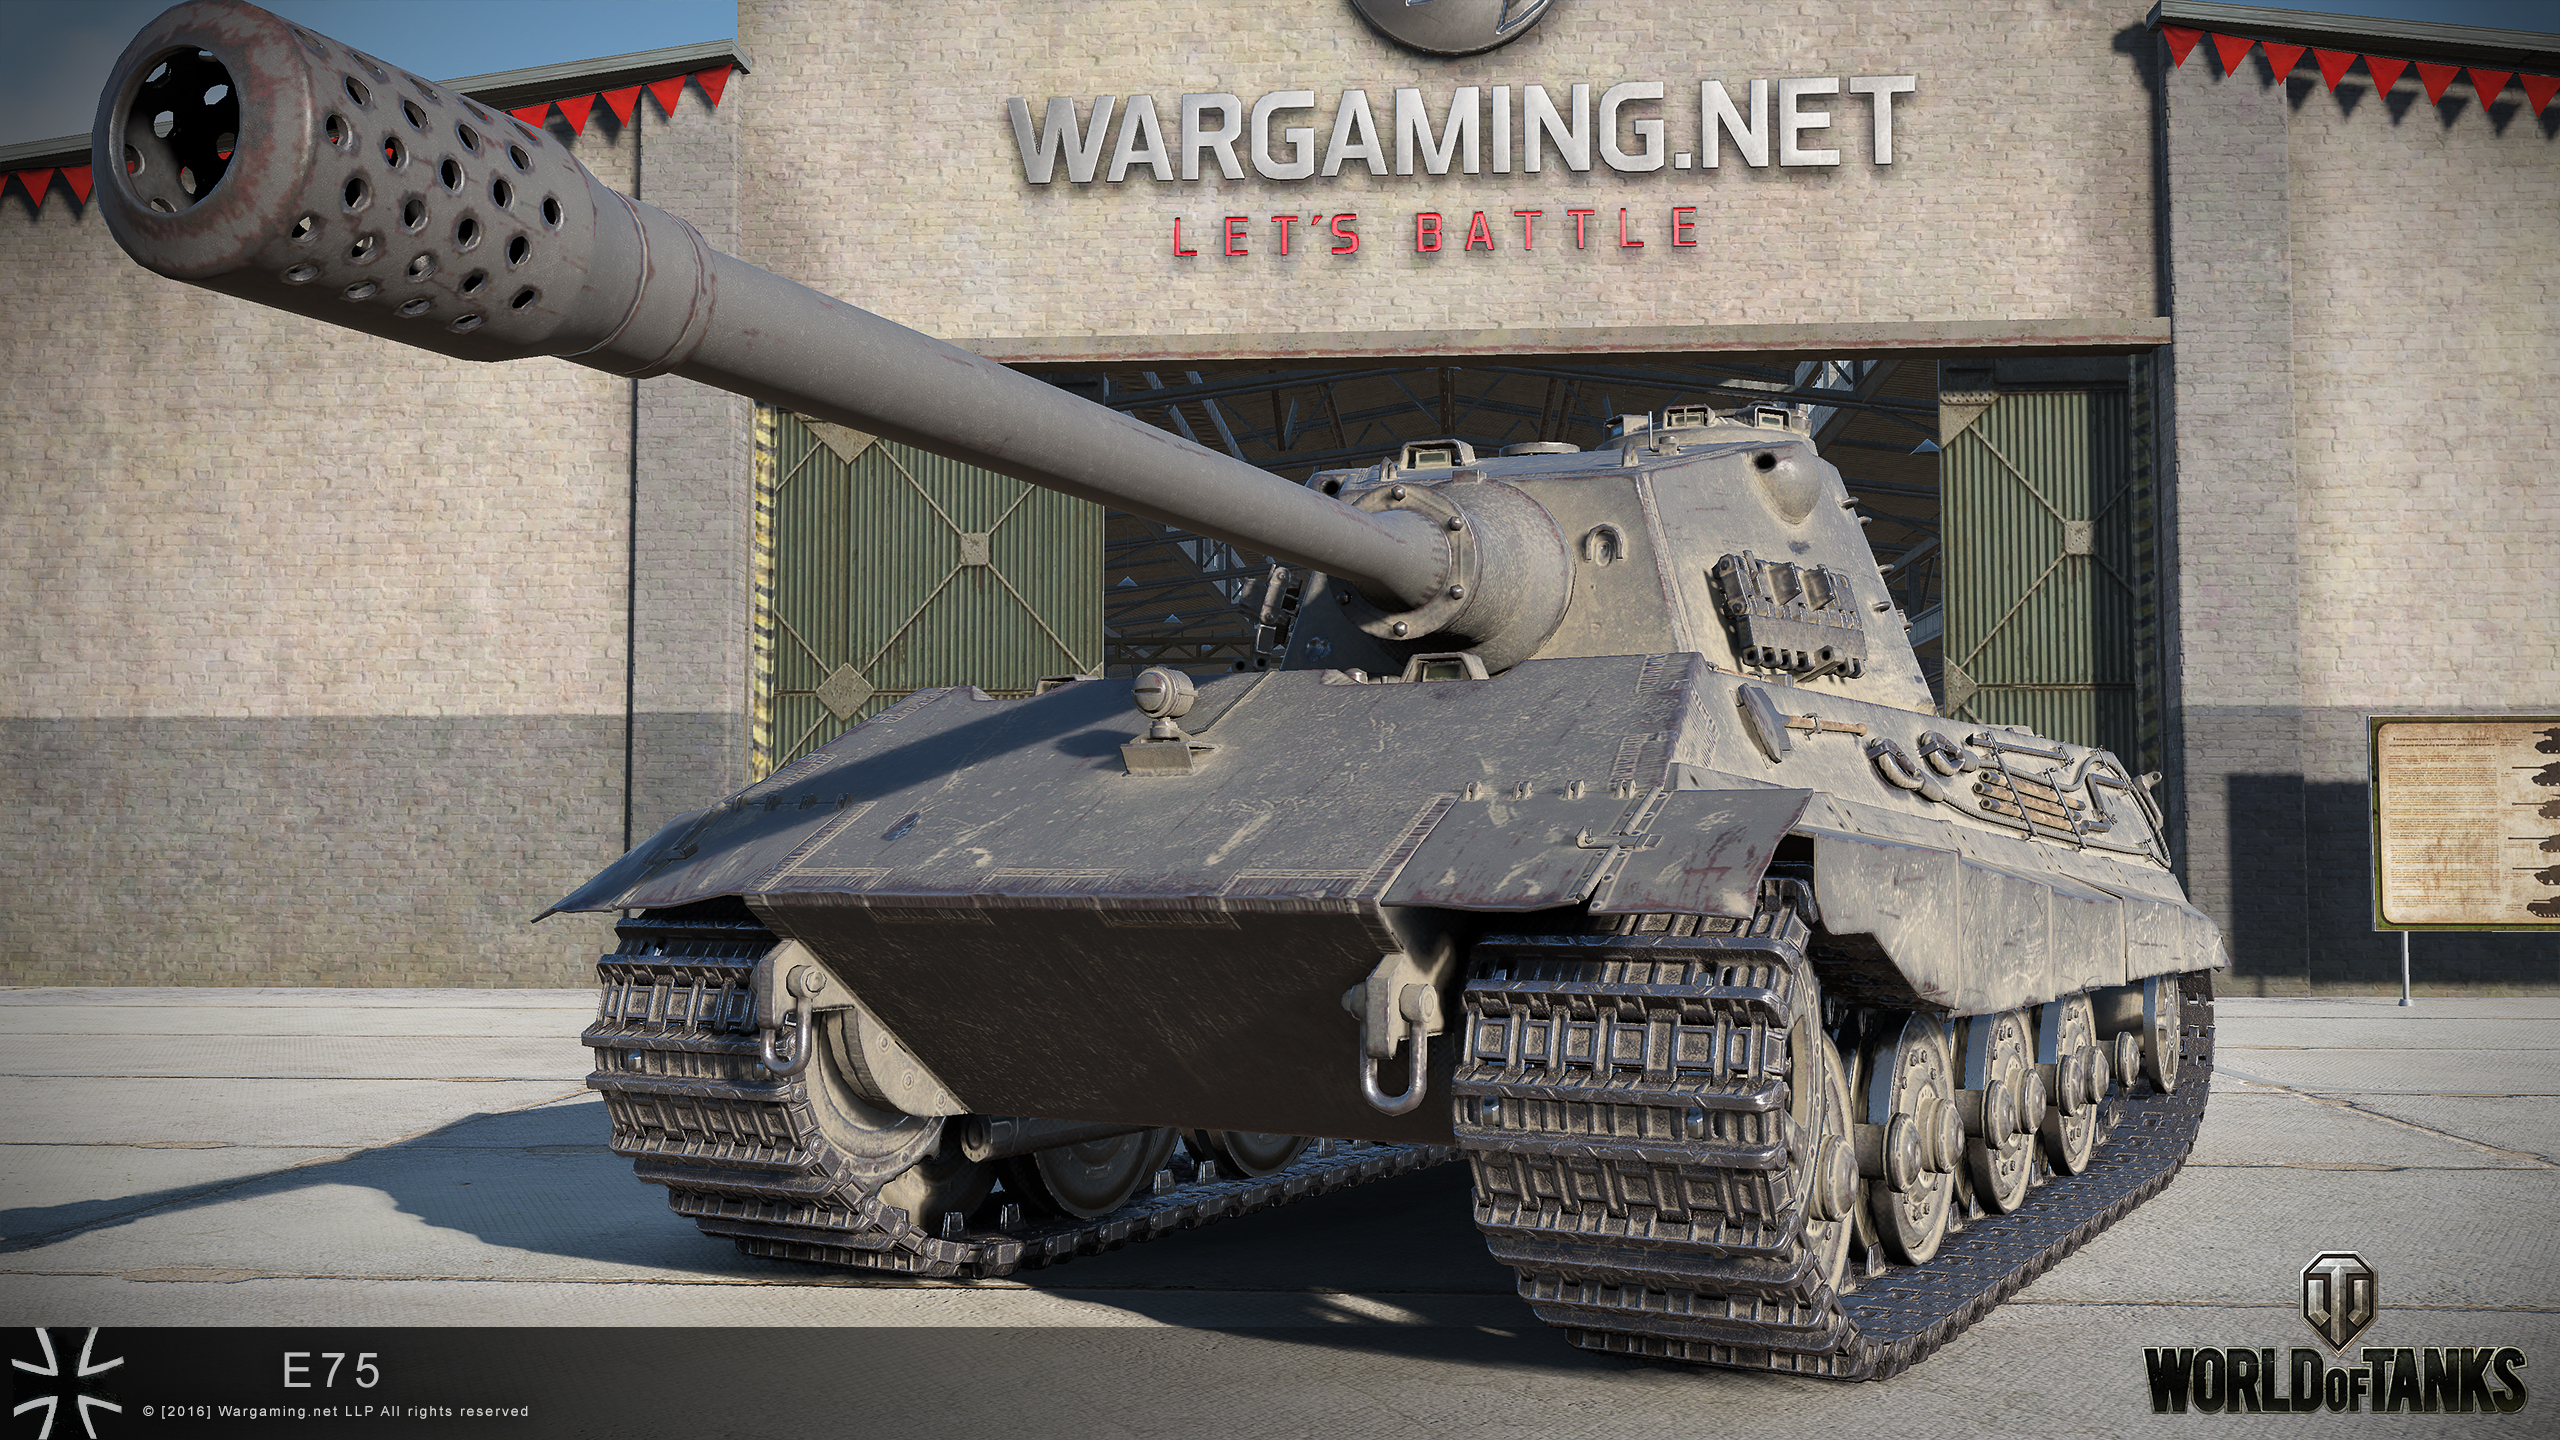 e-75 hd renders – the armored patrol